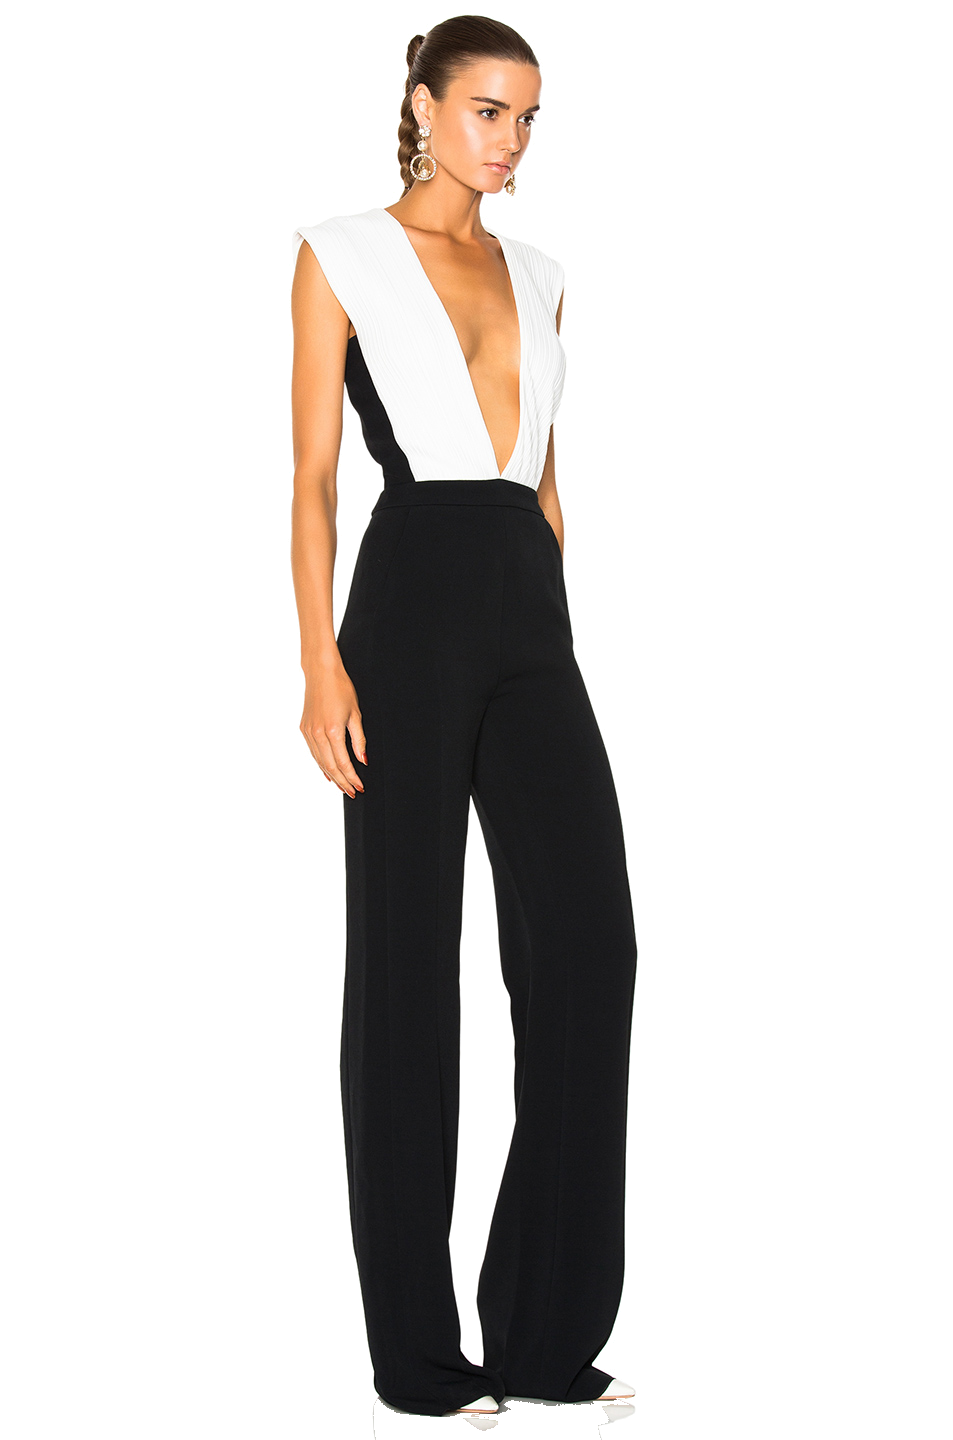 black + white plunge jumpsuit